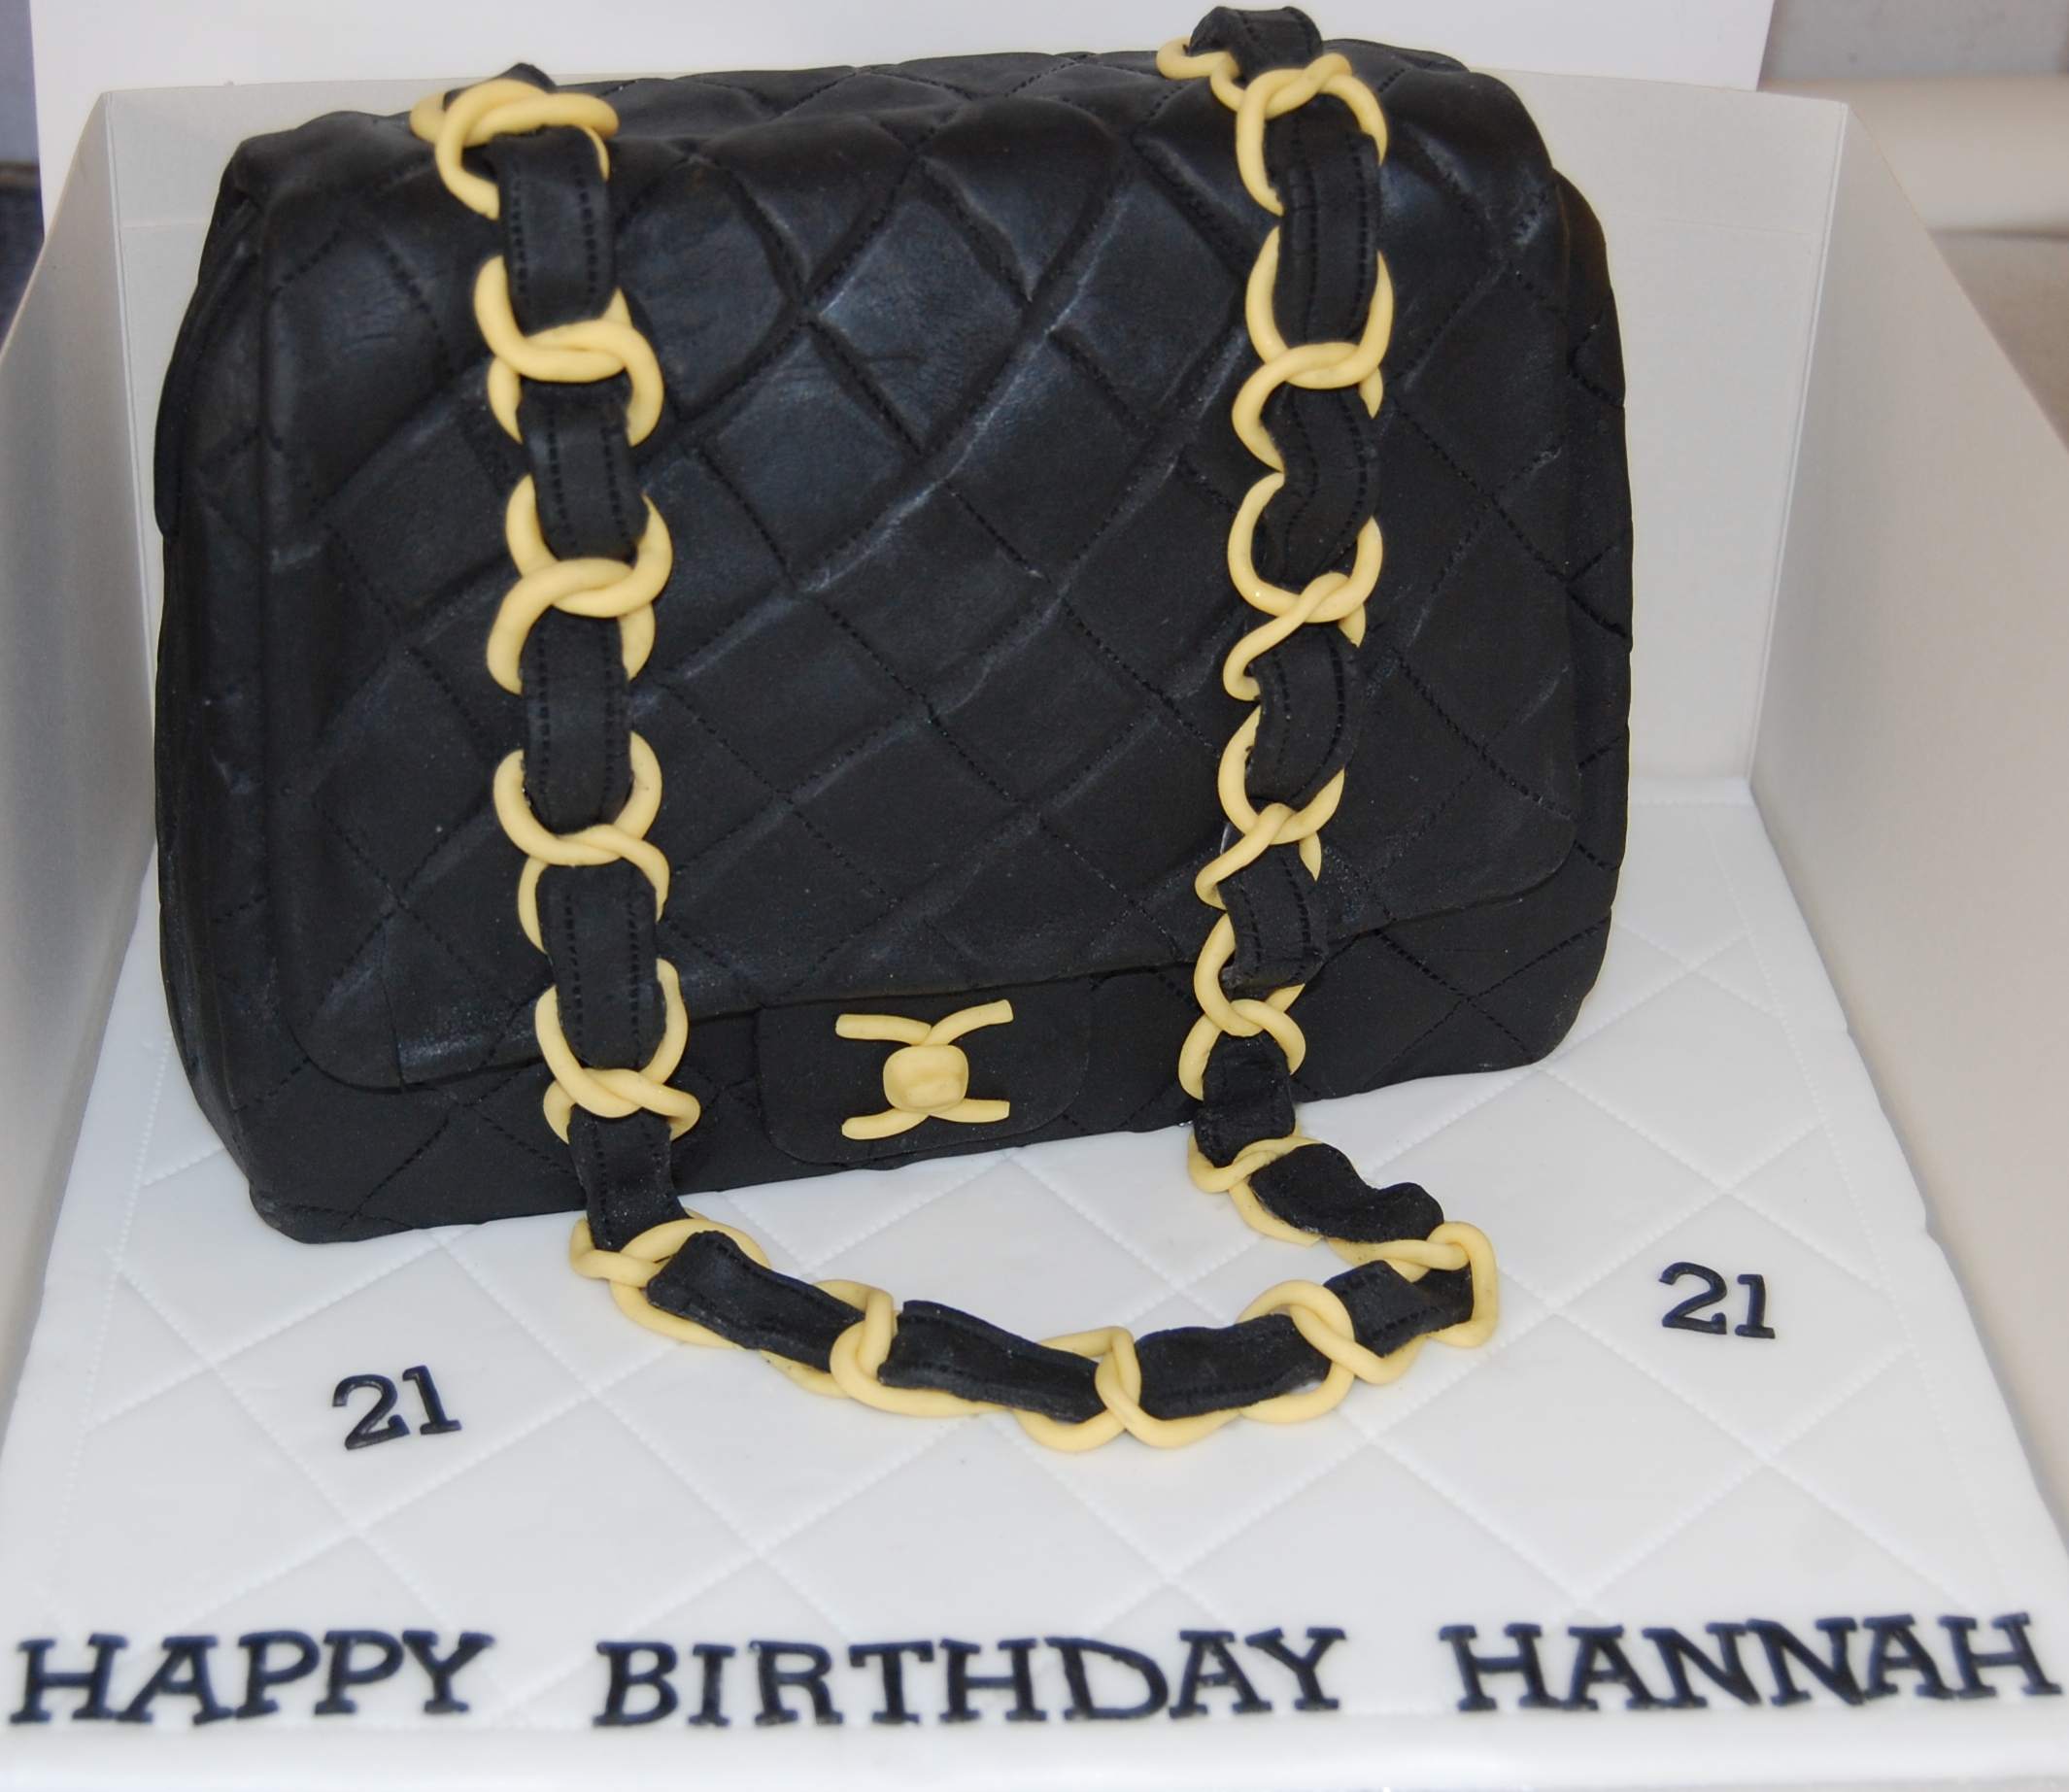 ae7c6707ecb2 Chanel bag birthday cake with the classic black and gold strap – it ...